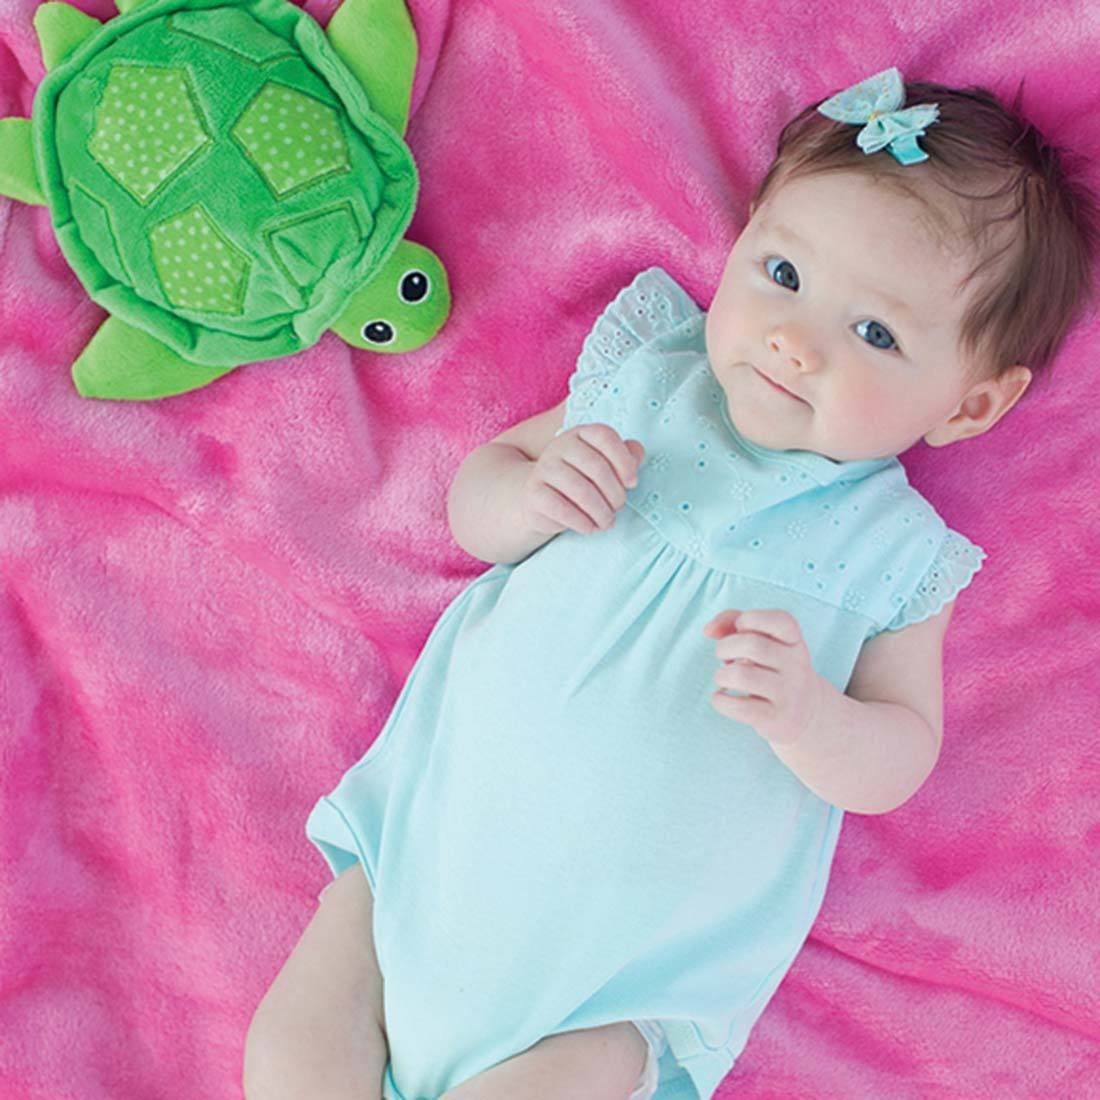 ZOOCCHINI Baby Buddy Stroller Blanket - Tammy the Turtle-1